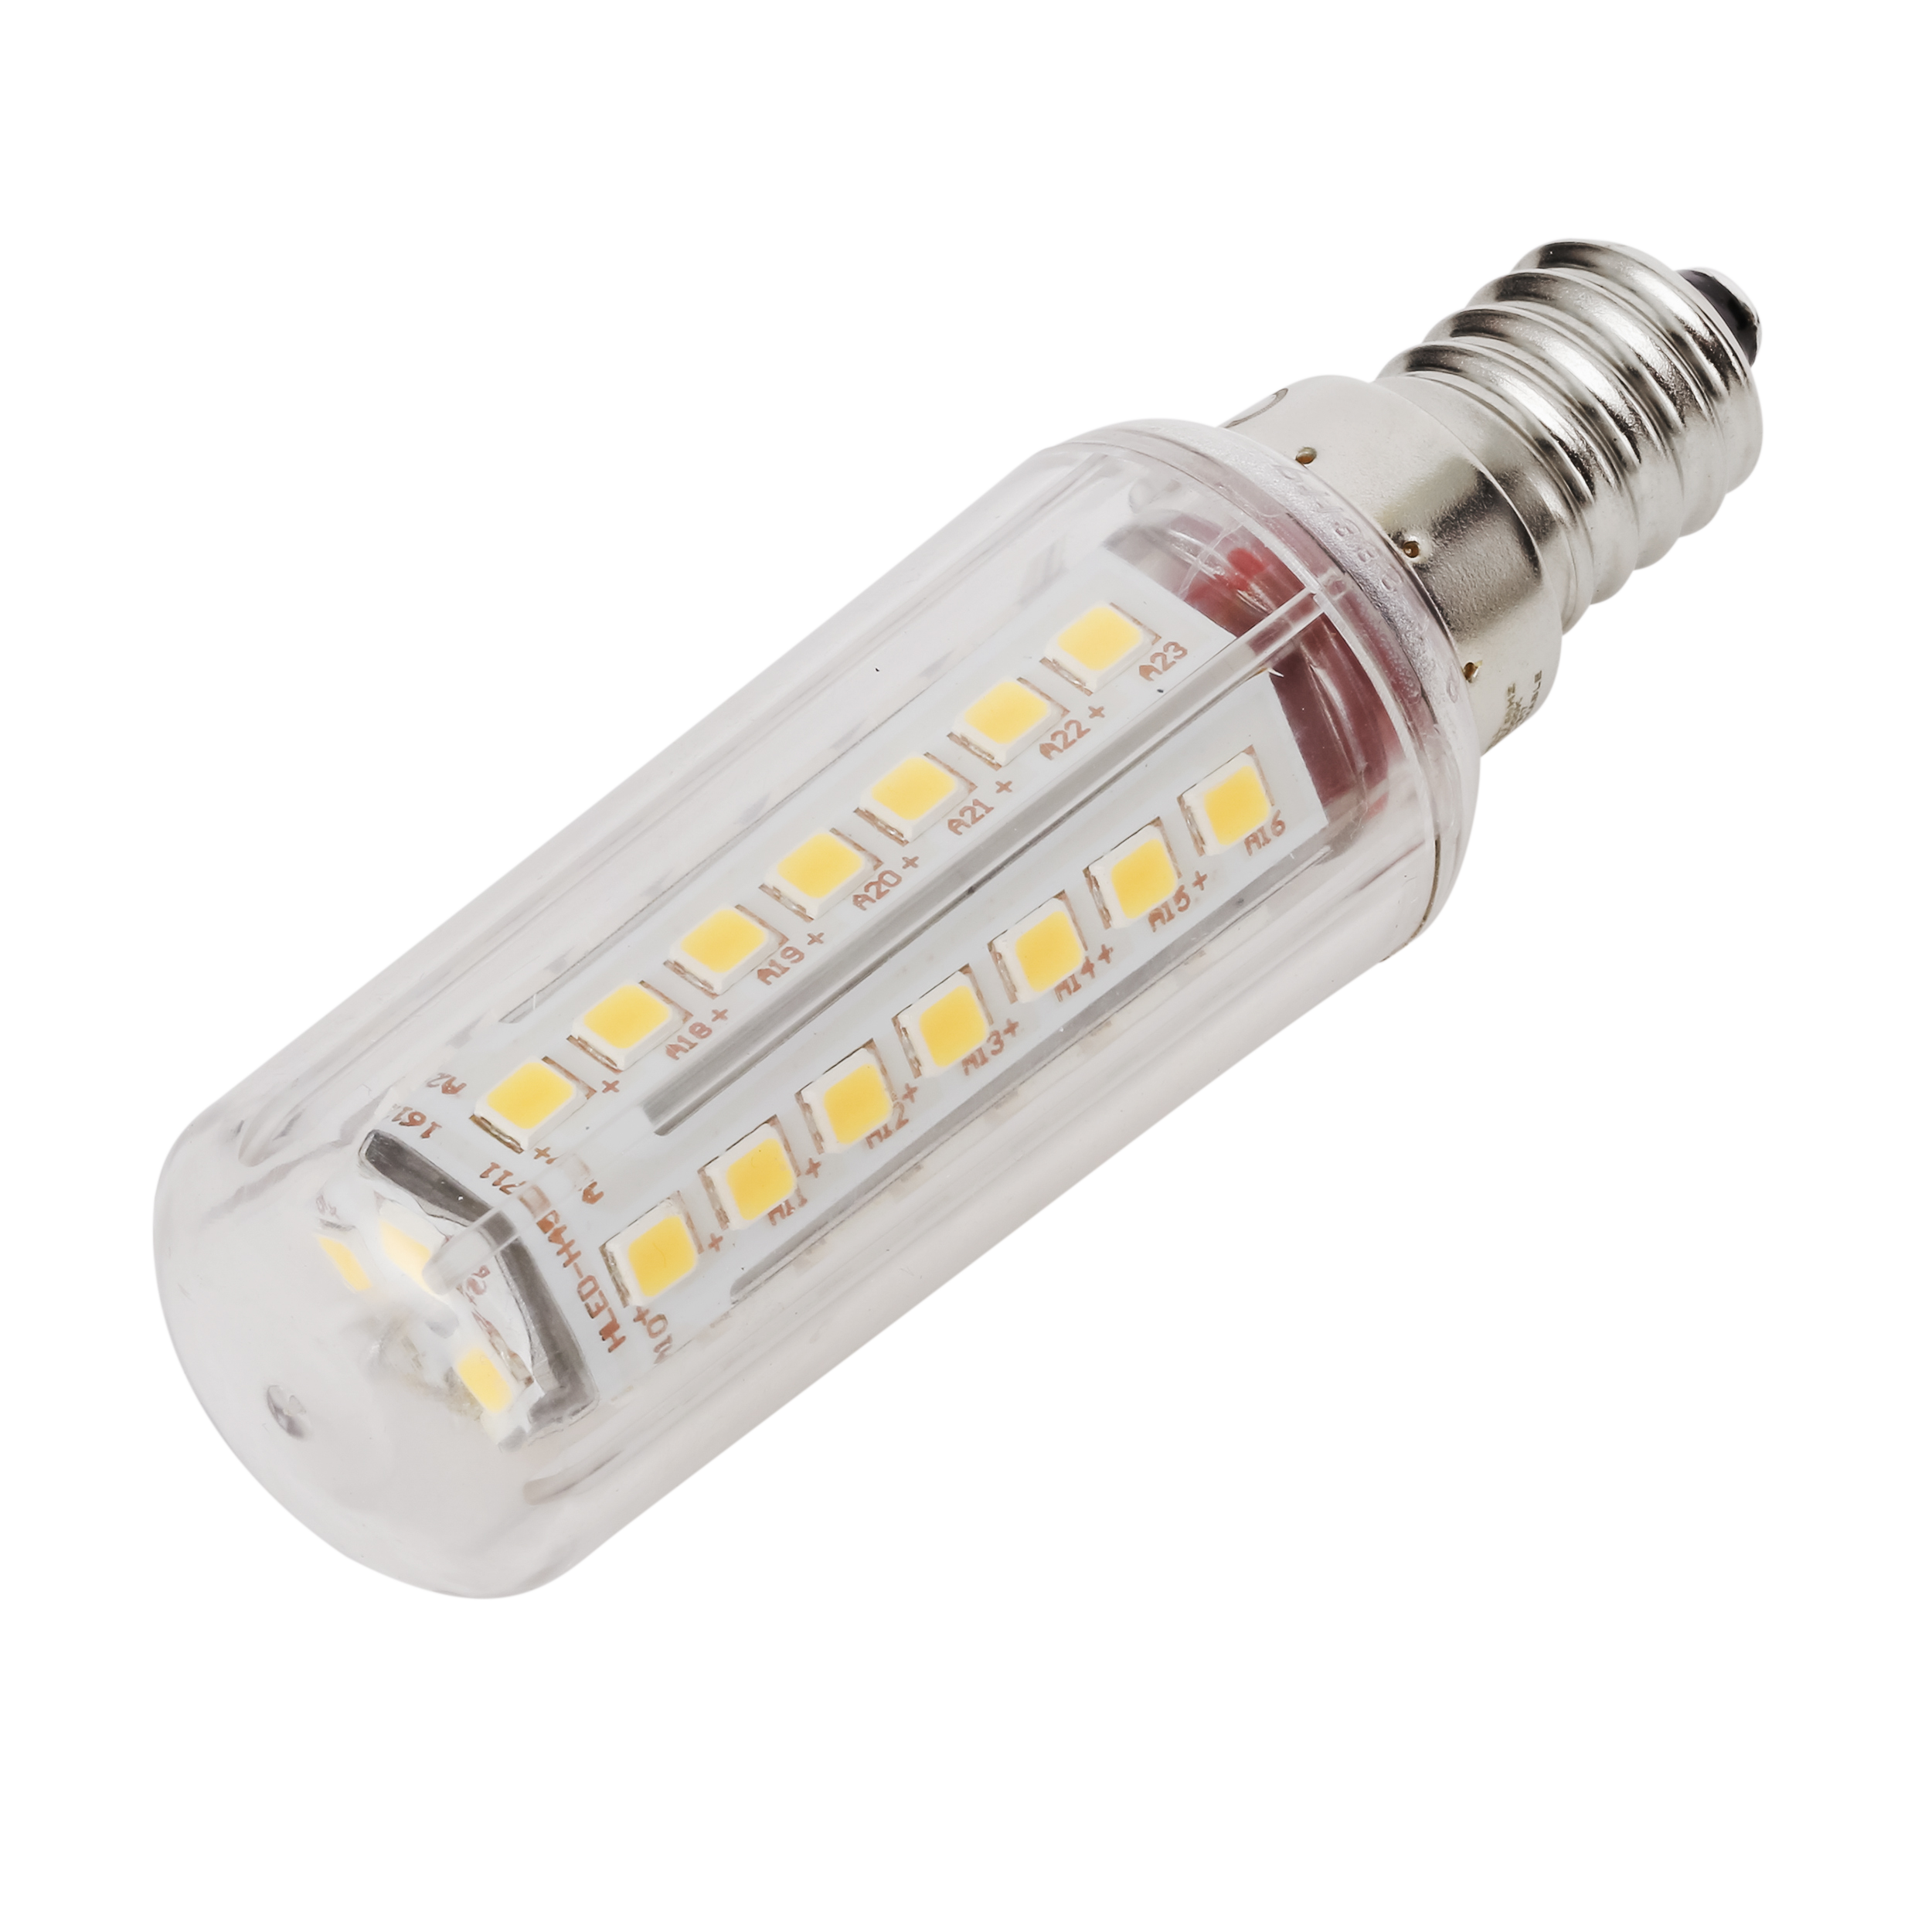 LED Appliance Lamps